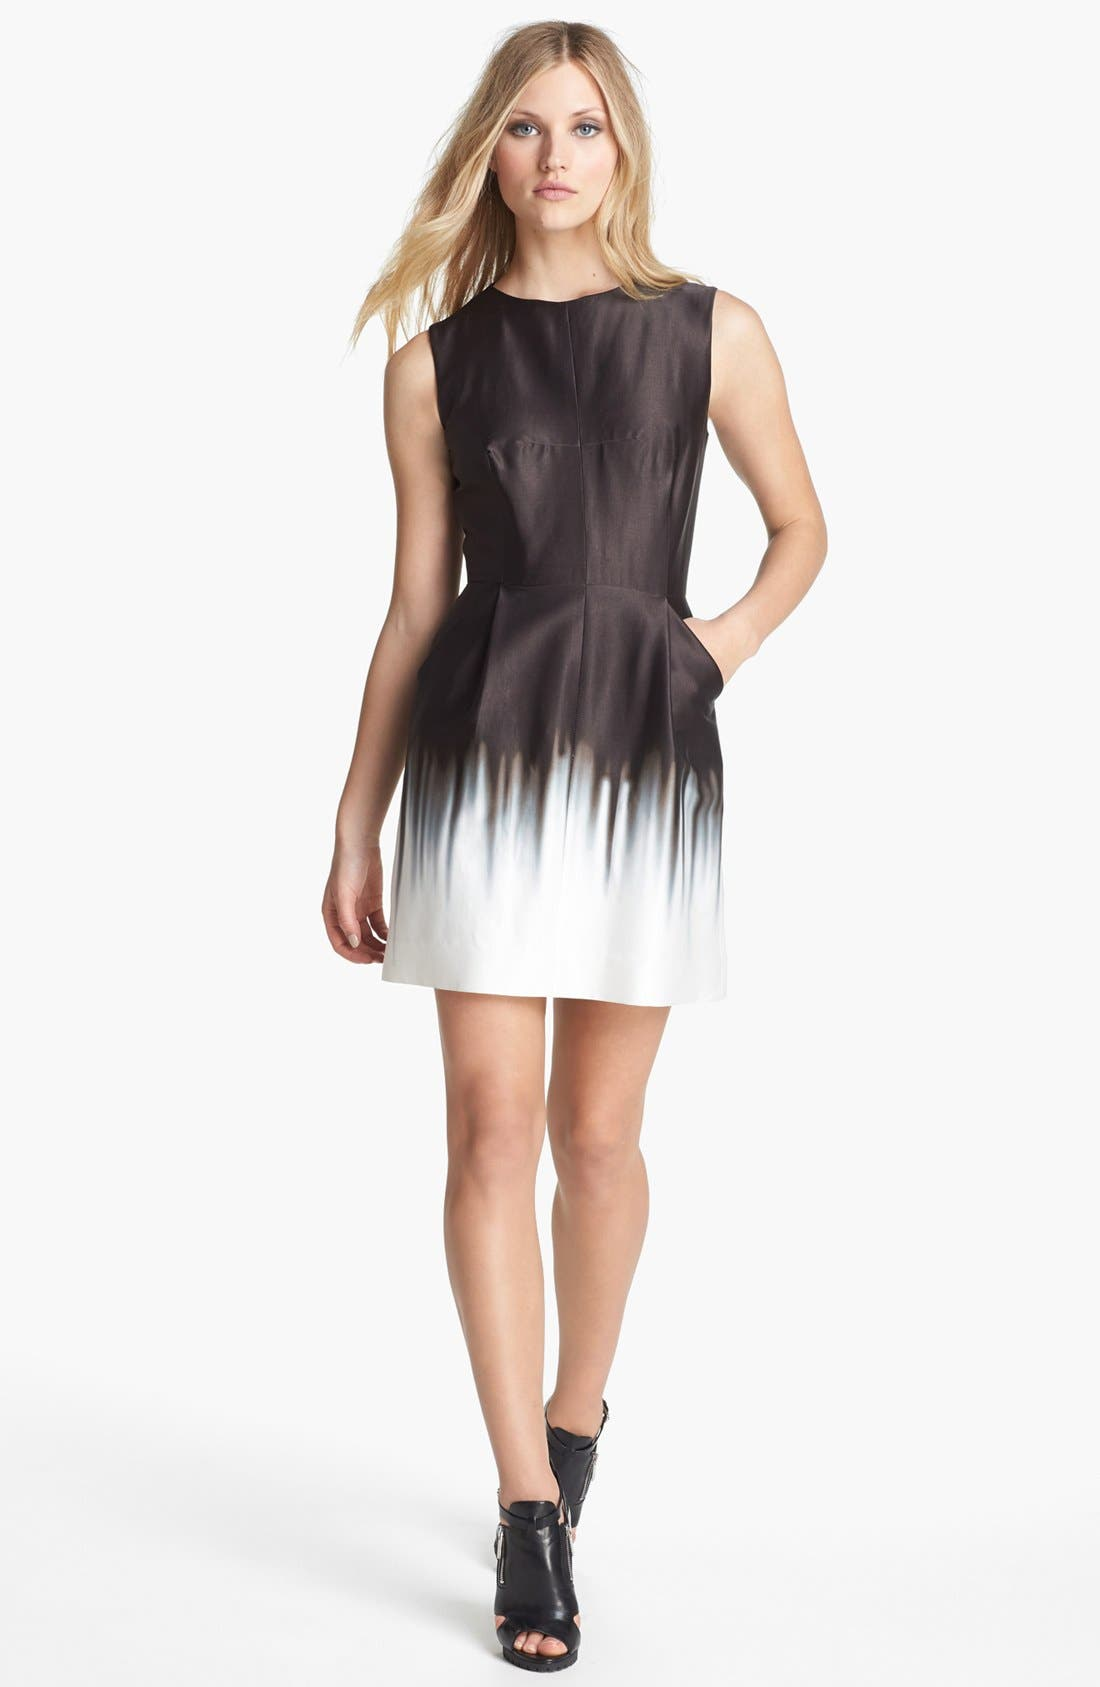 Alternate Image 1 Selected - Milly 'Coco' Print Sheath Dress